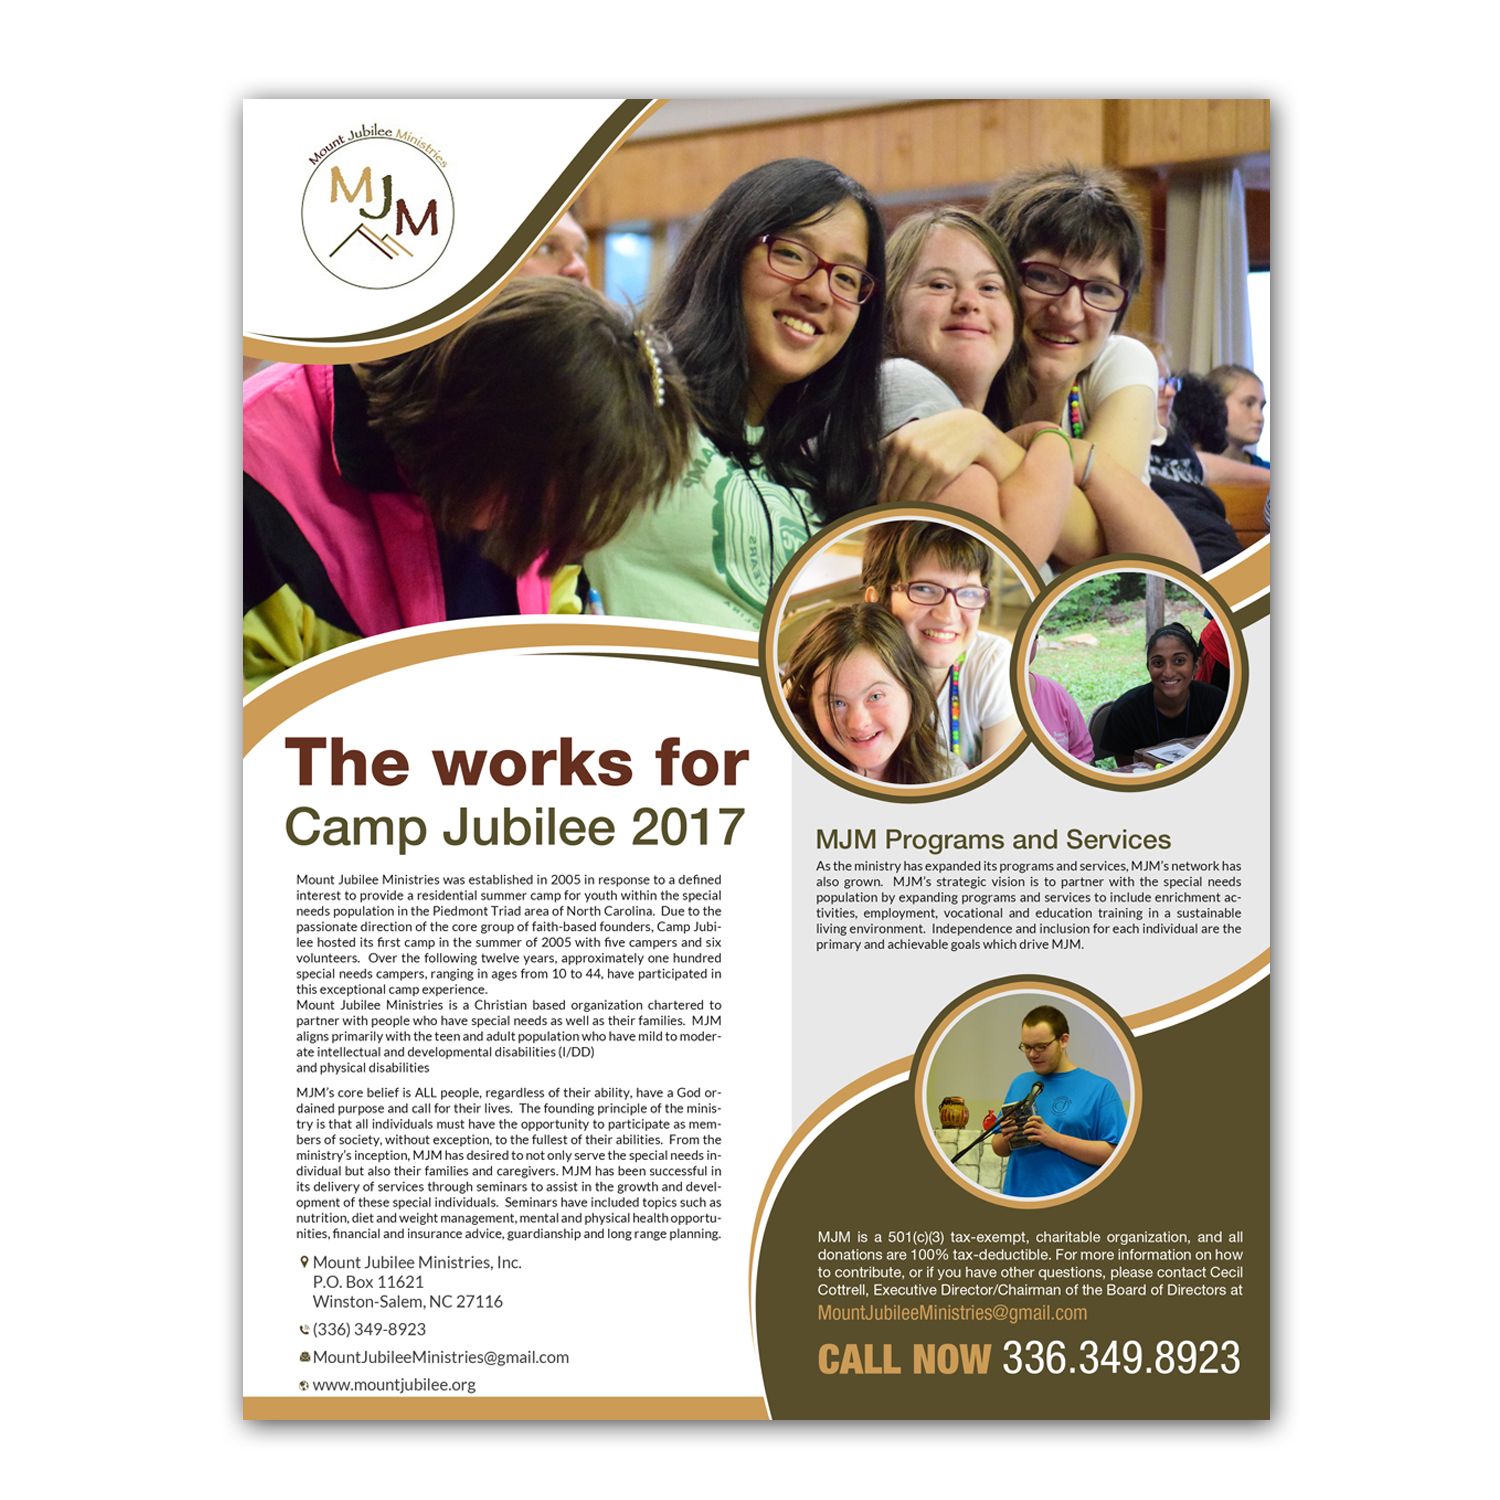 professional serious charity flyer design for a company by